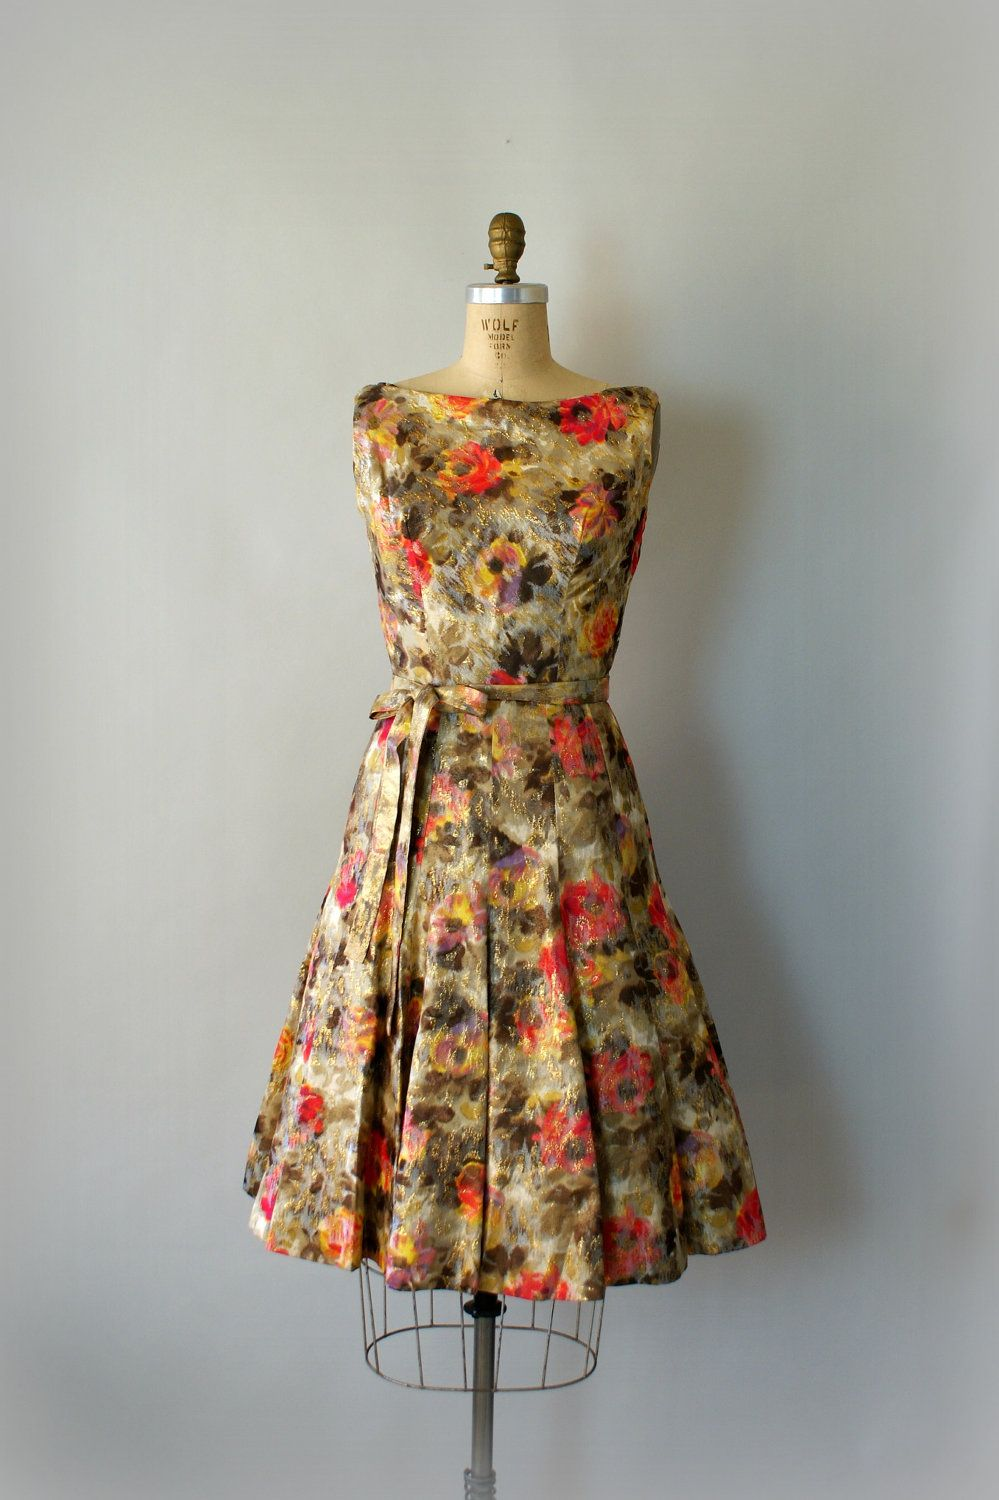 Vintage 1960s Suzy Perette Party Dress